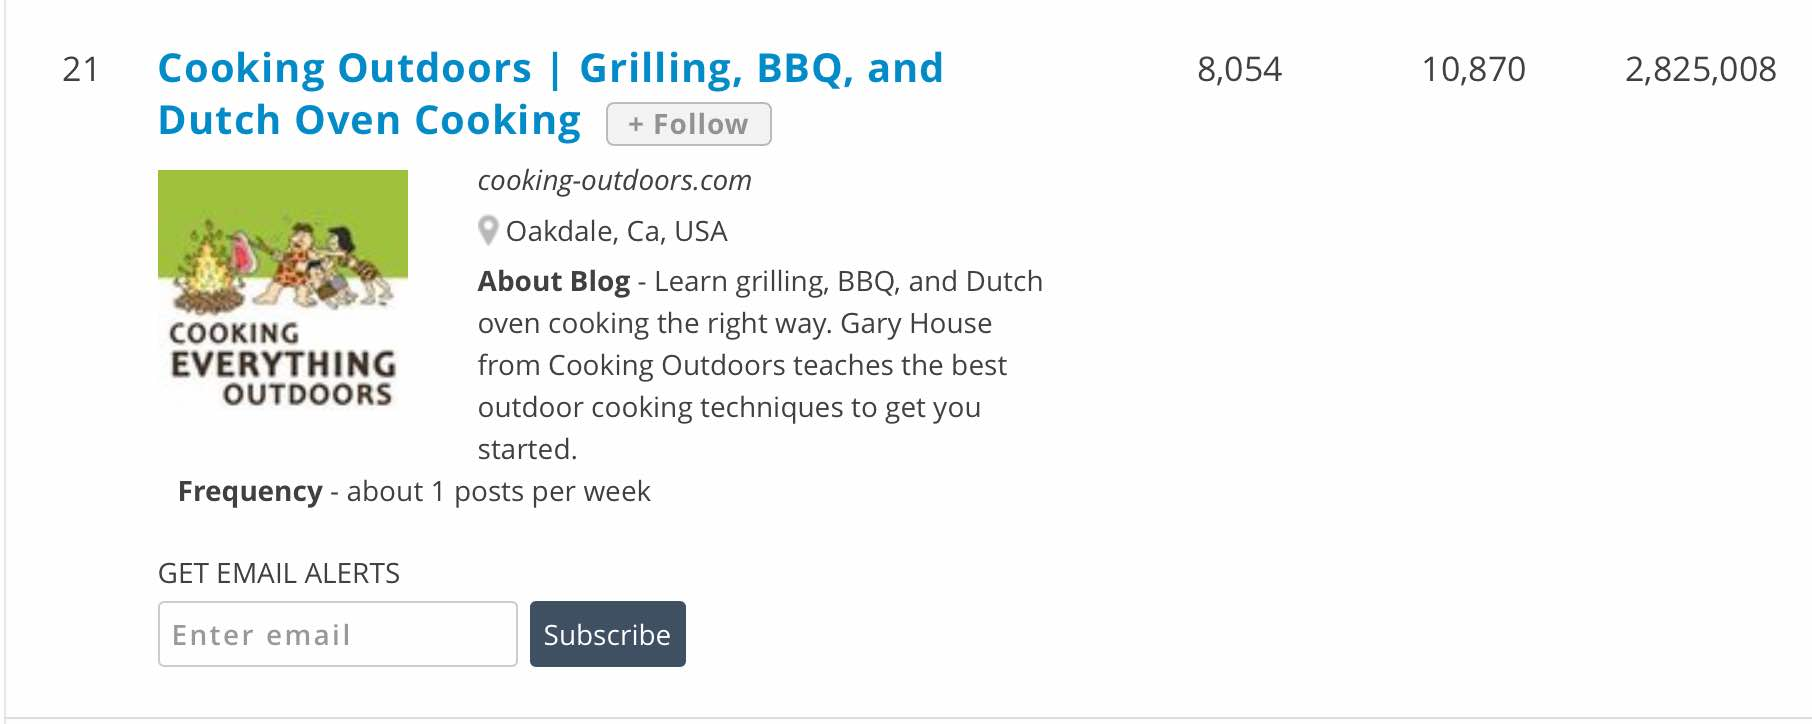 Top 100 Barbecue Websites | Cooking-Outdoors.com | Gary House